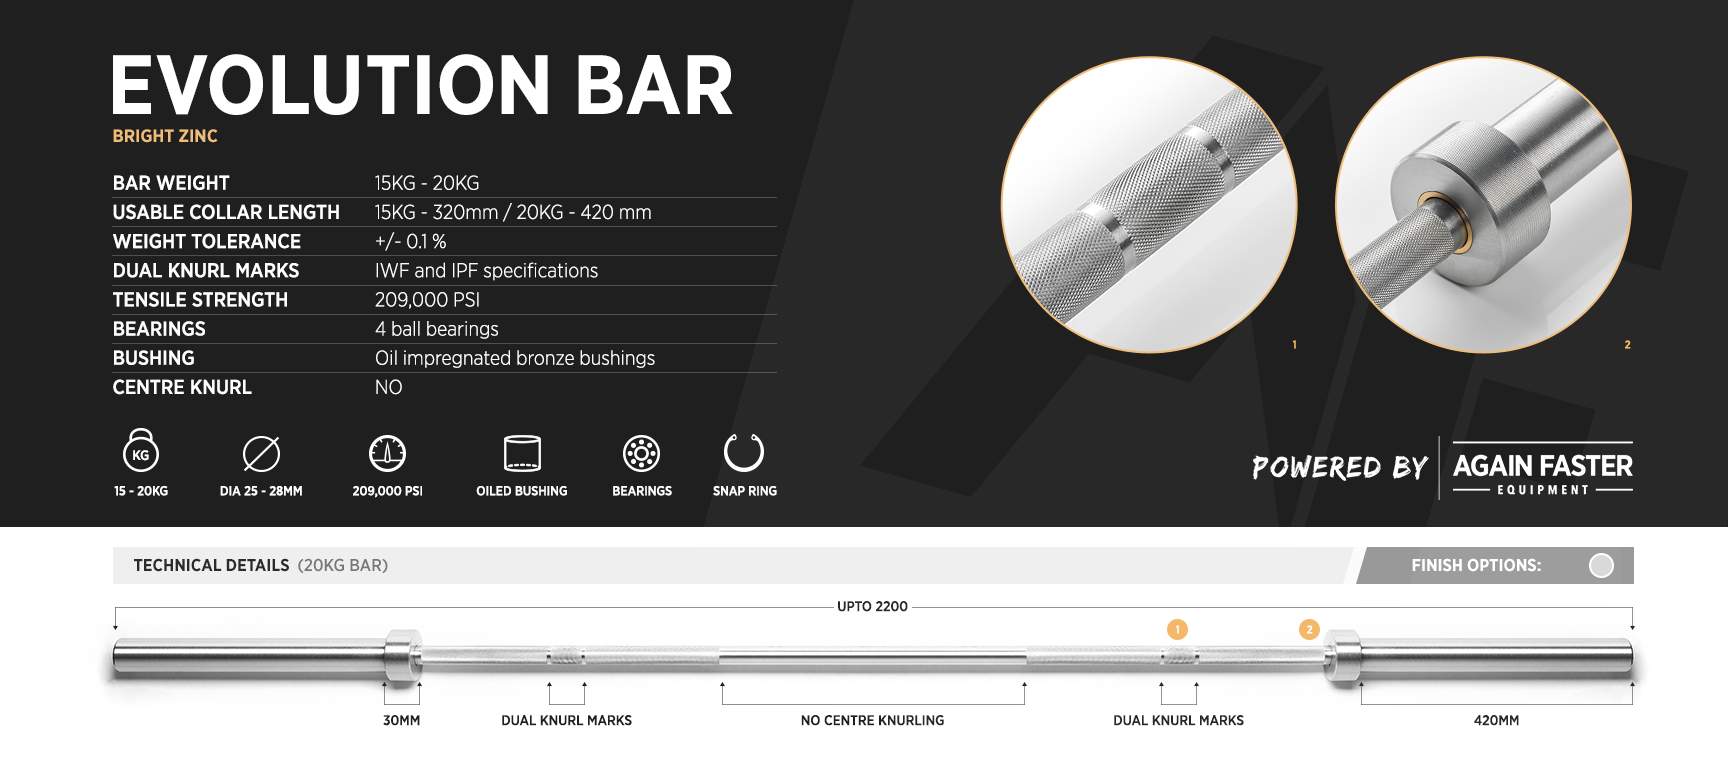 Evolution Bar Details